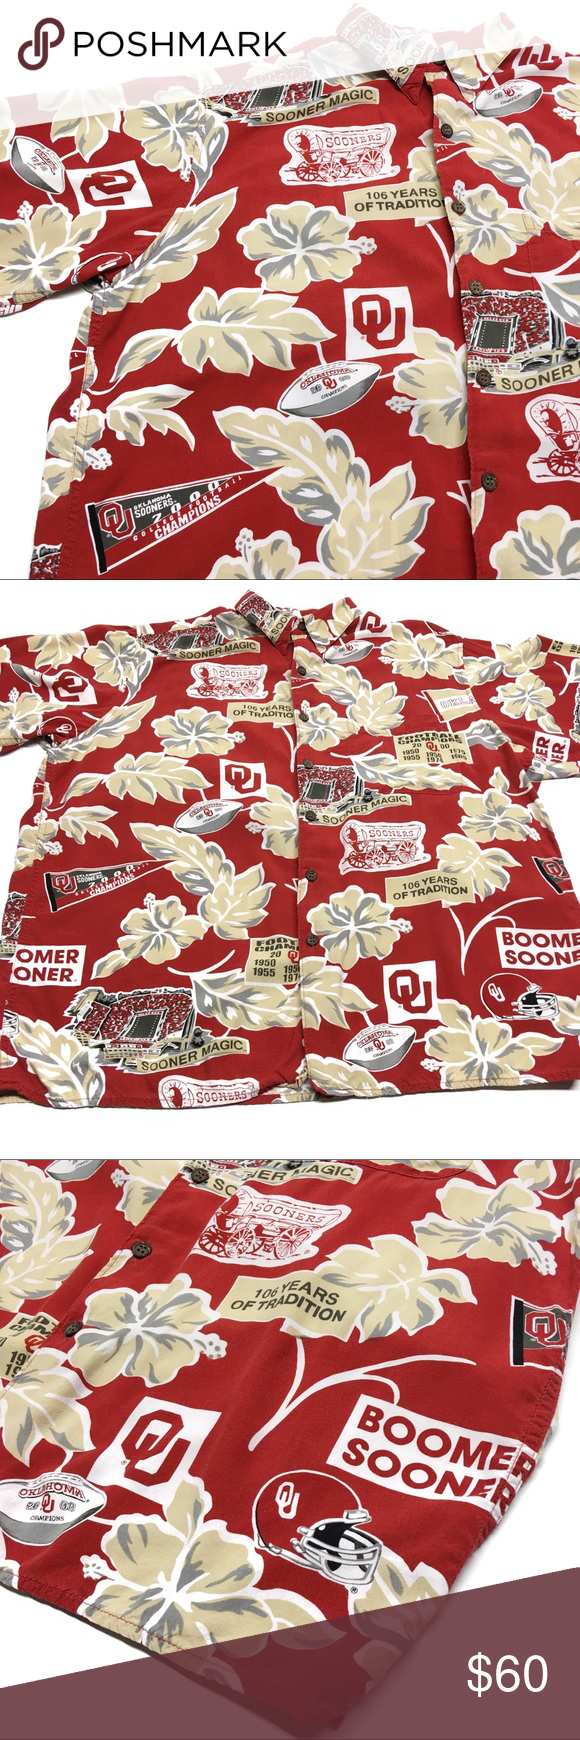 14457046a Reyn Spooner Hawaiian OU Champions D1 Reyn Spooner Hawaiian Traditionals  short sleeve Shirt // University of Oklahoma OU Boomer Sooners football  2000 ...